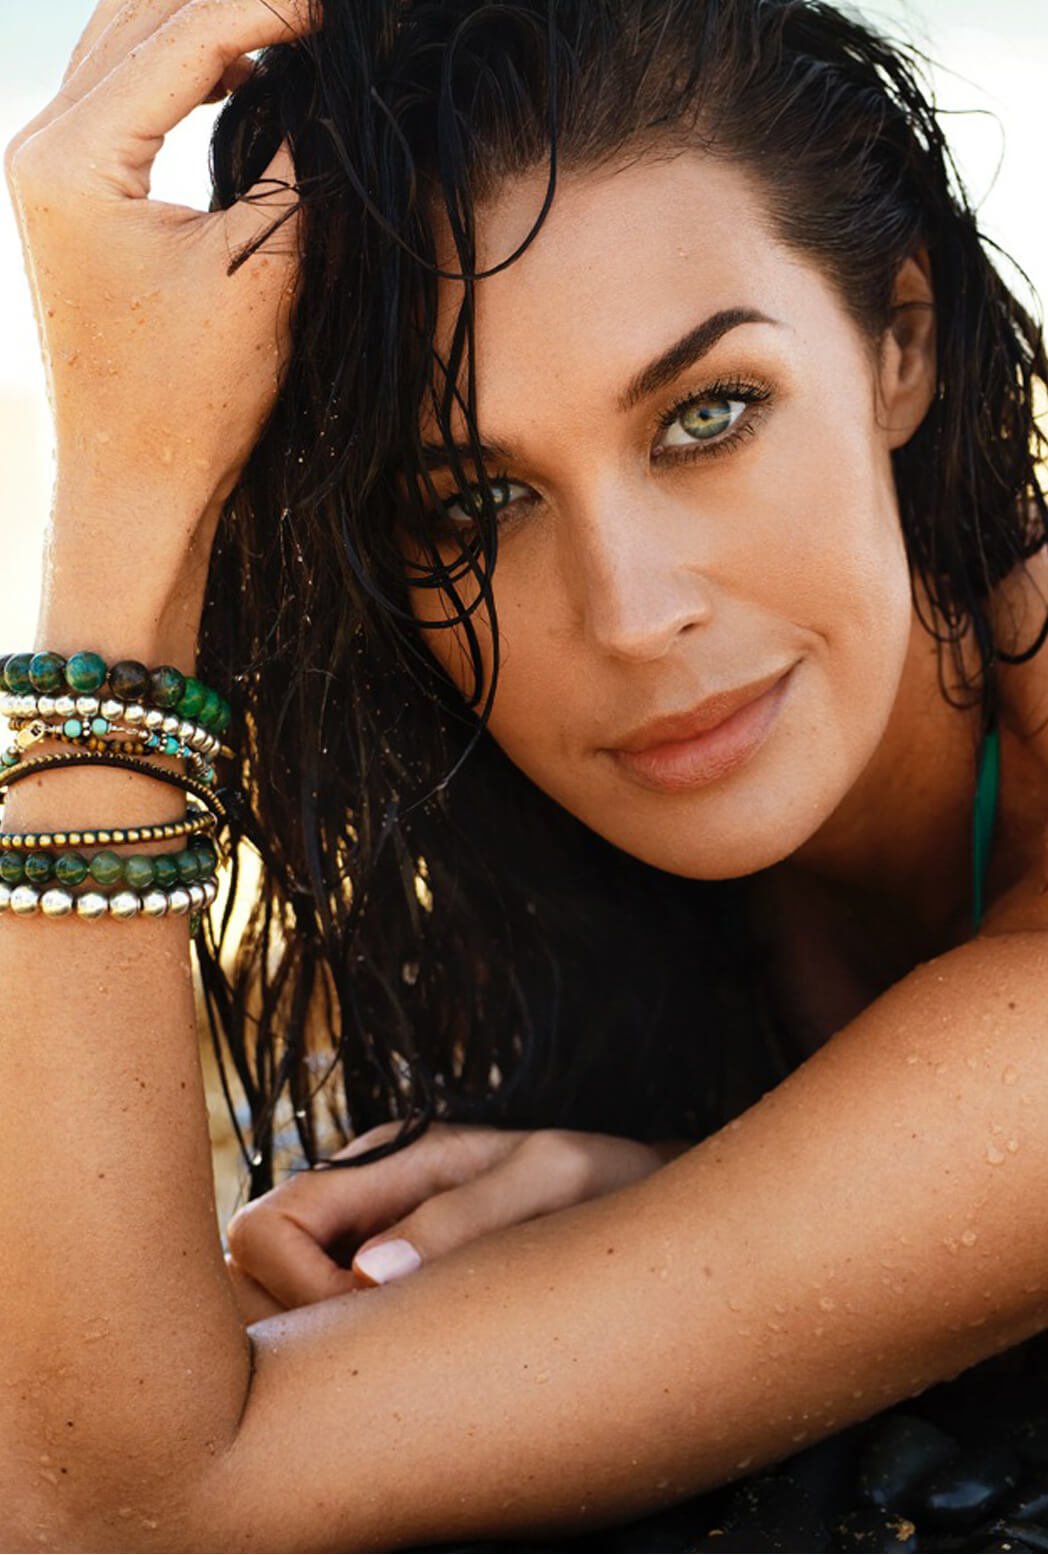 MEGAN GALE The Business Woman.jpg